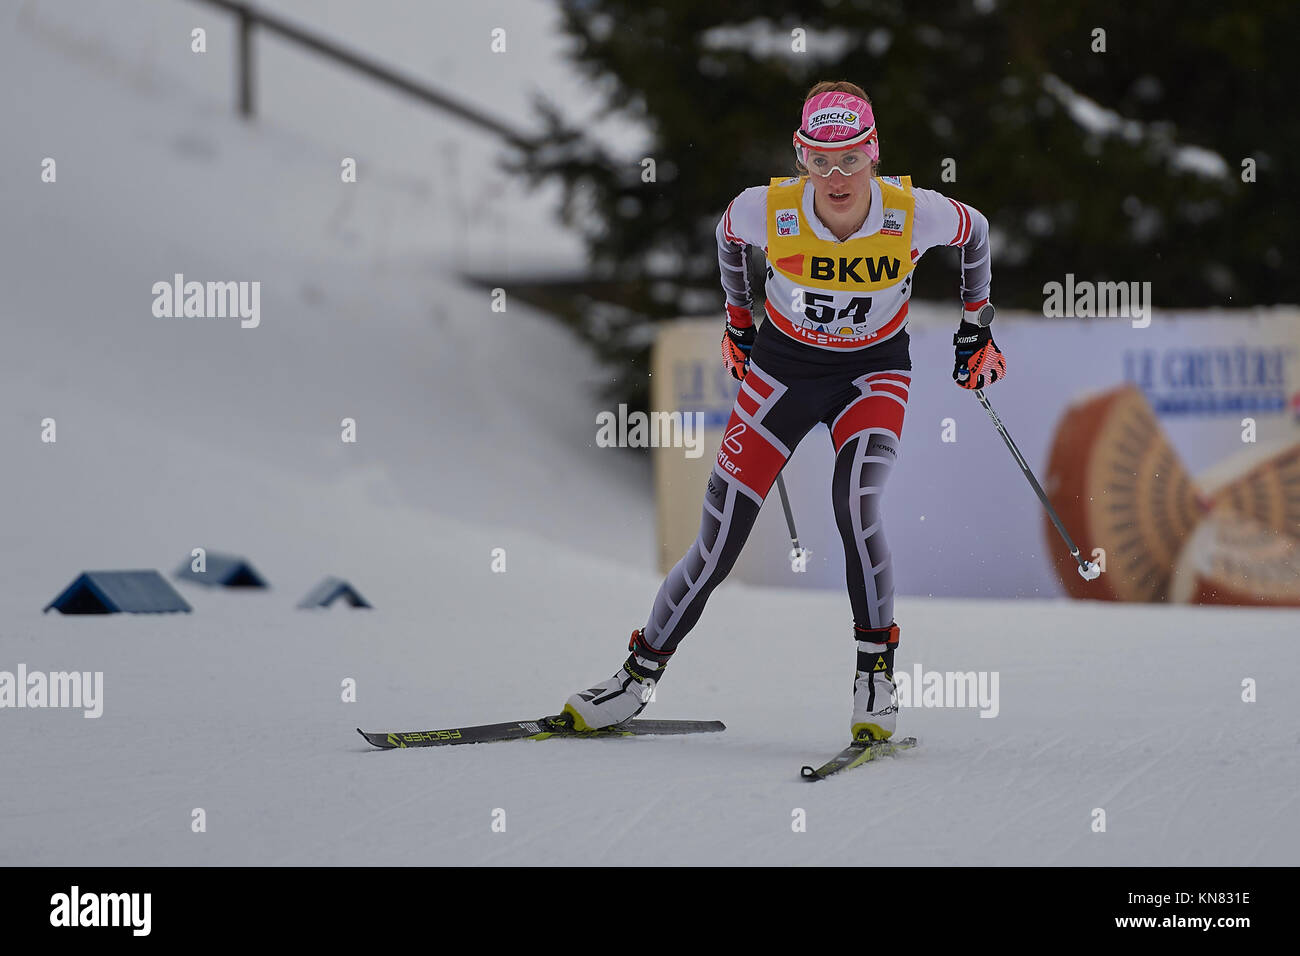 Davos, Switzerland, 10th December 2017. STADLOBER Teresa (AUT) during the Ladies' 10 km F competition at the FIS - Stock Image